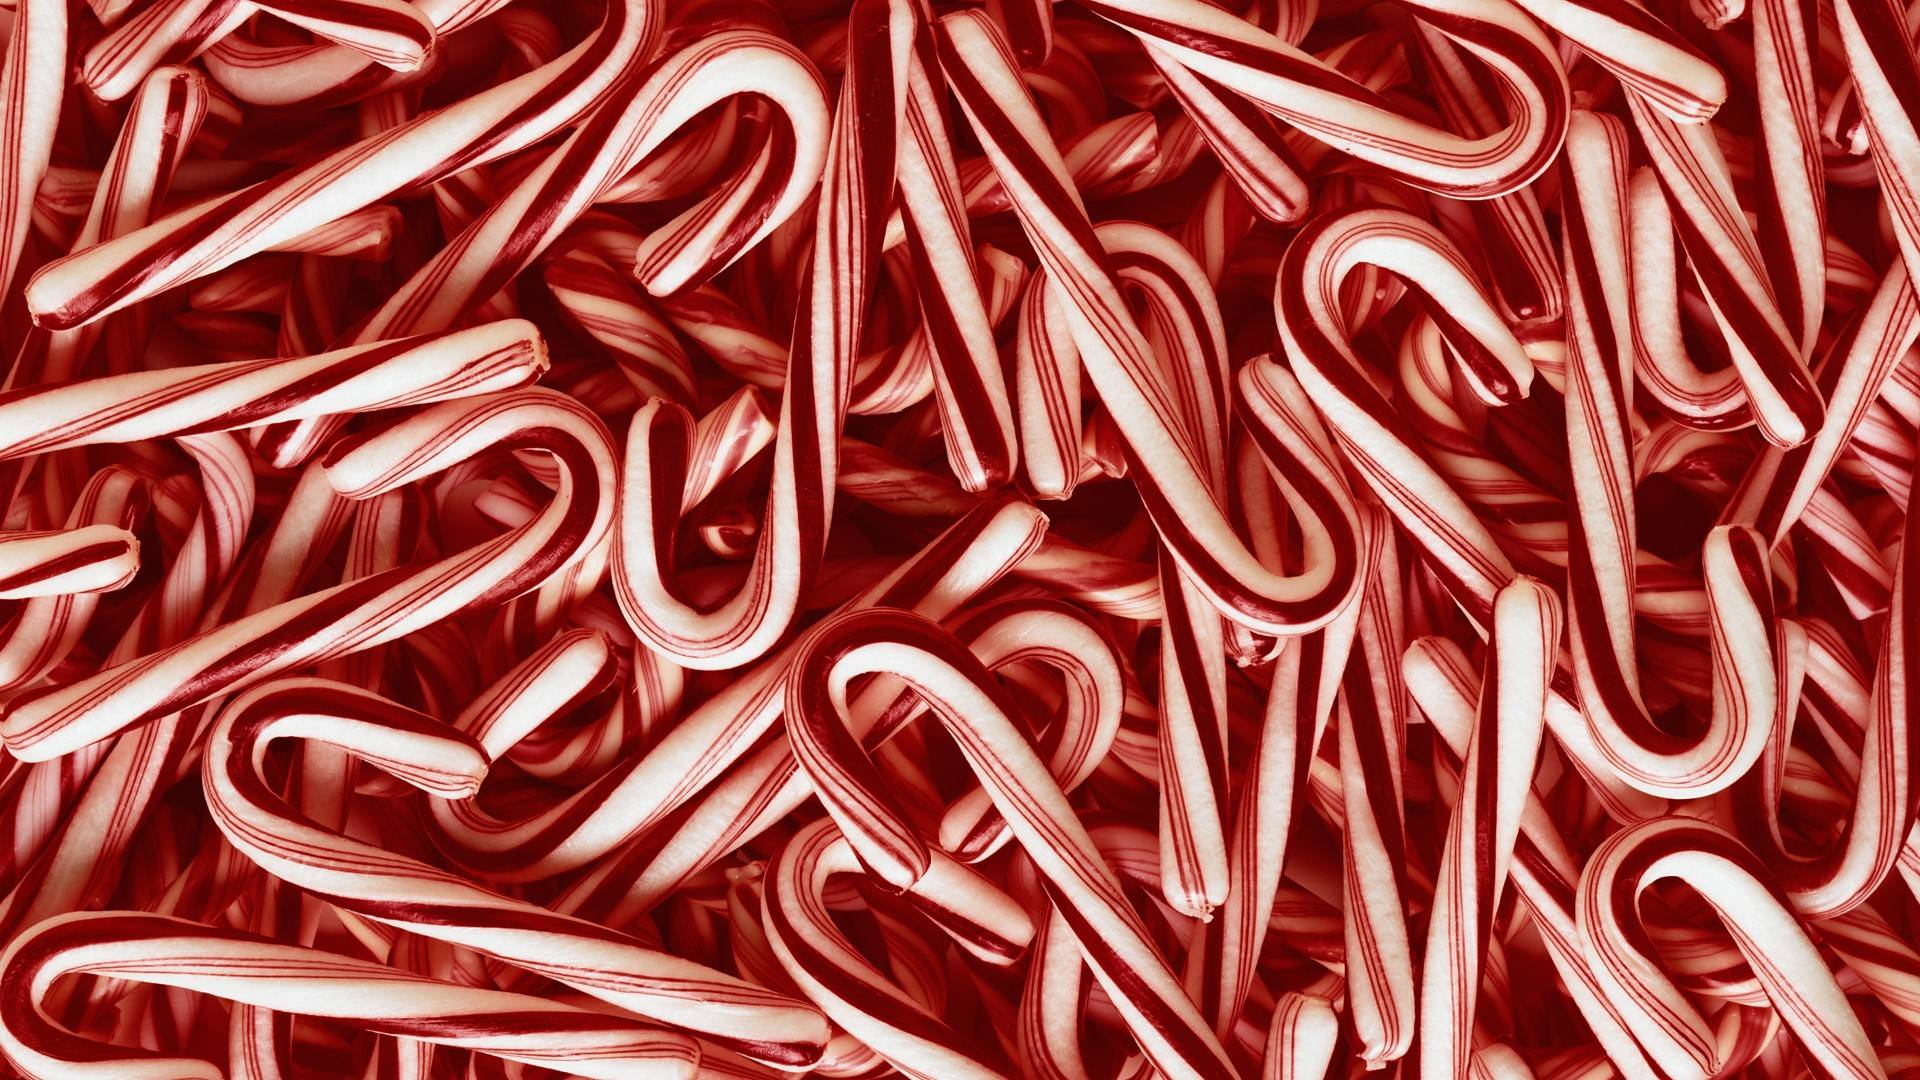 Candy Canes 19201080 Wallpaper 1666040 1920x1080